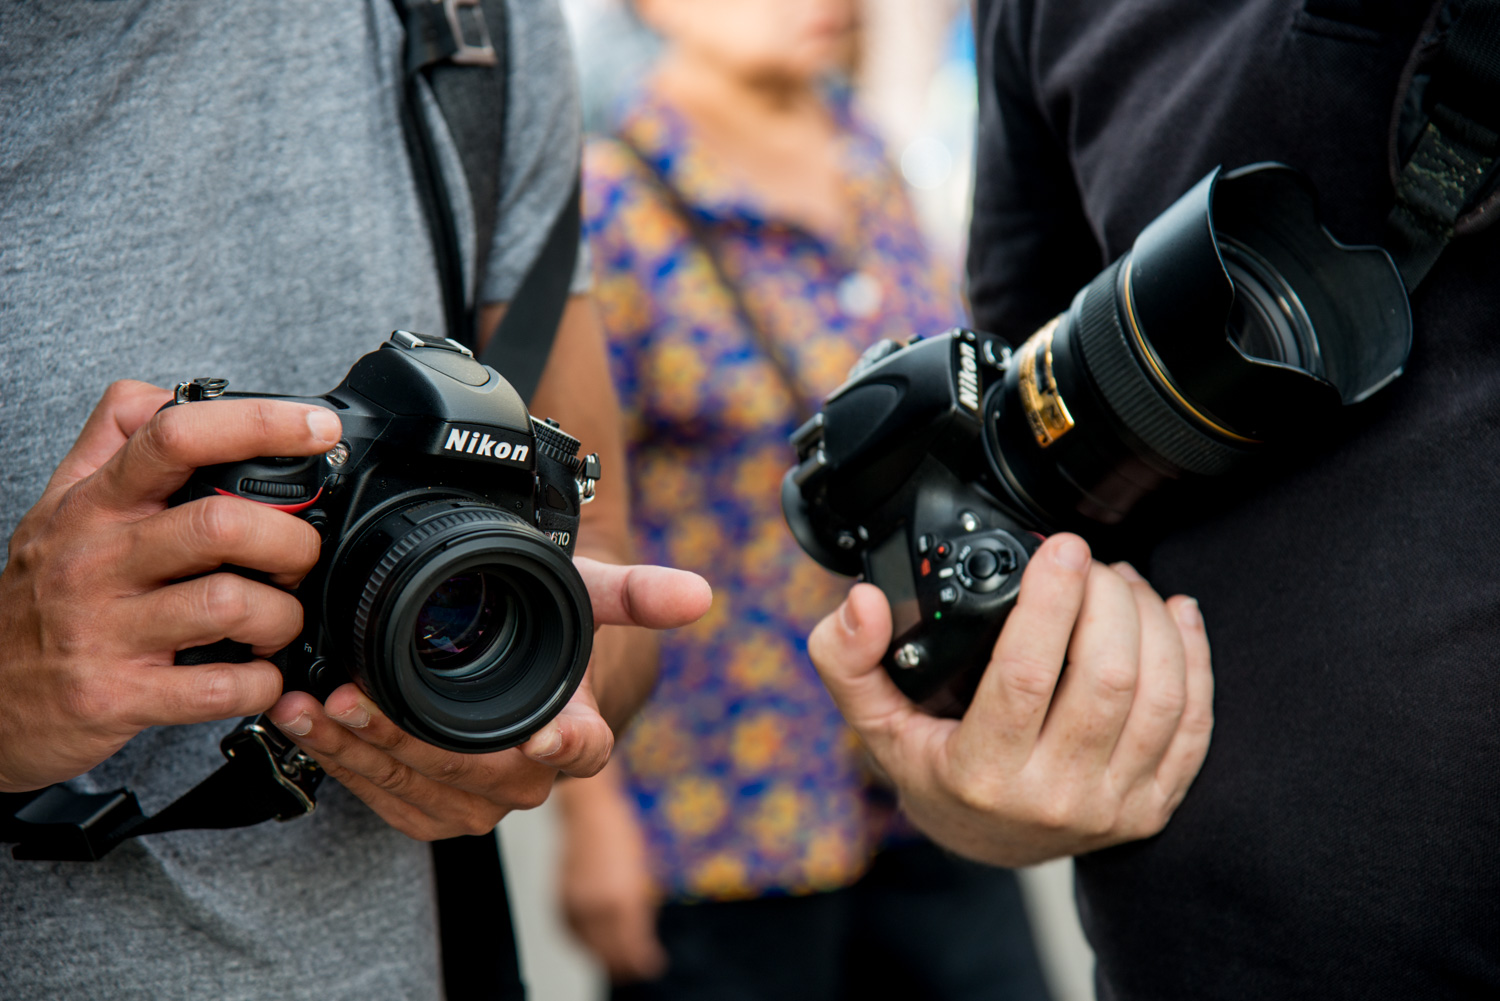 DSLR Lenses - Pros and Cons of Upgrading from a Phone to a Real Camera